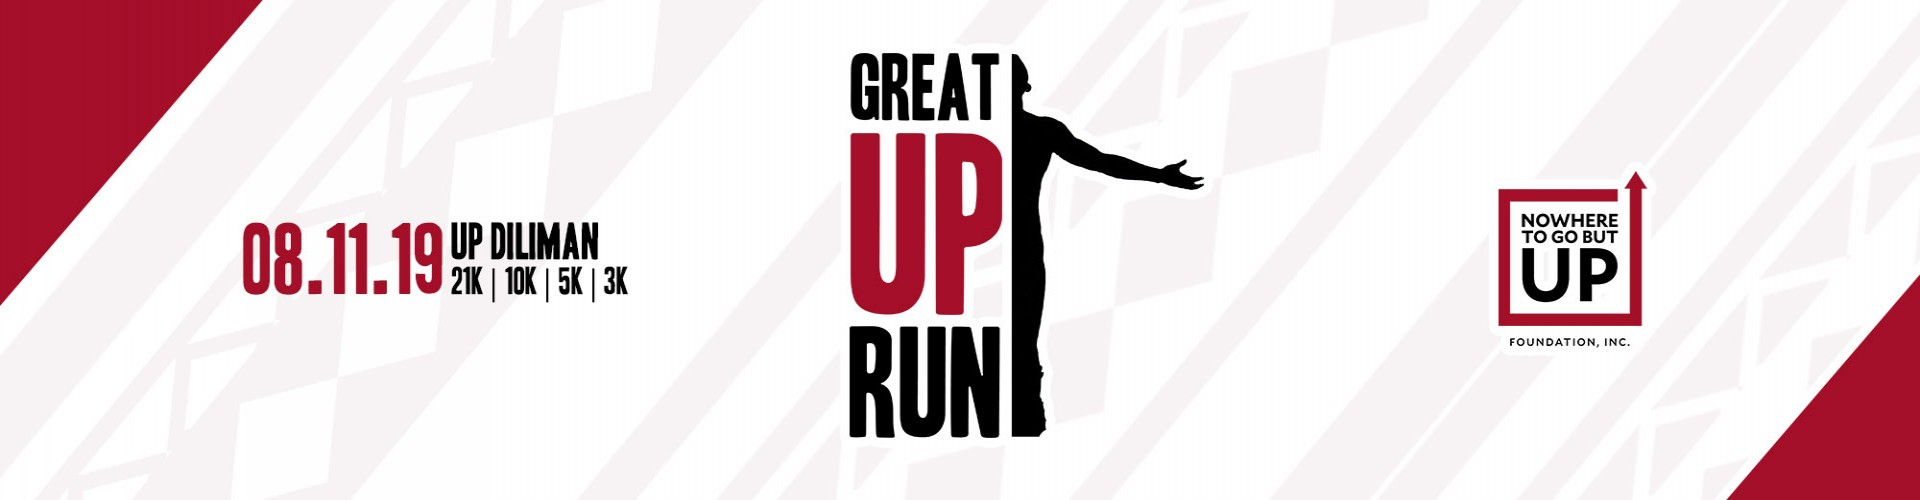 The Great UP Run